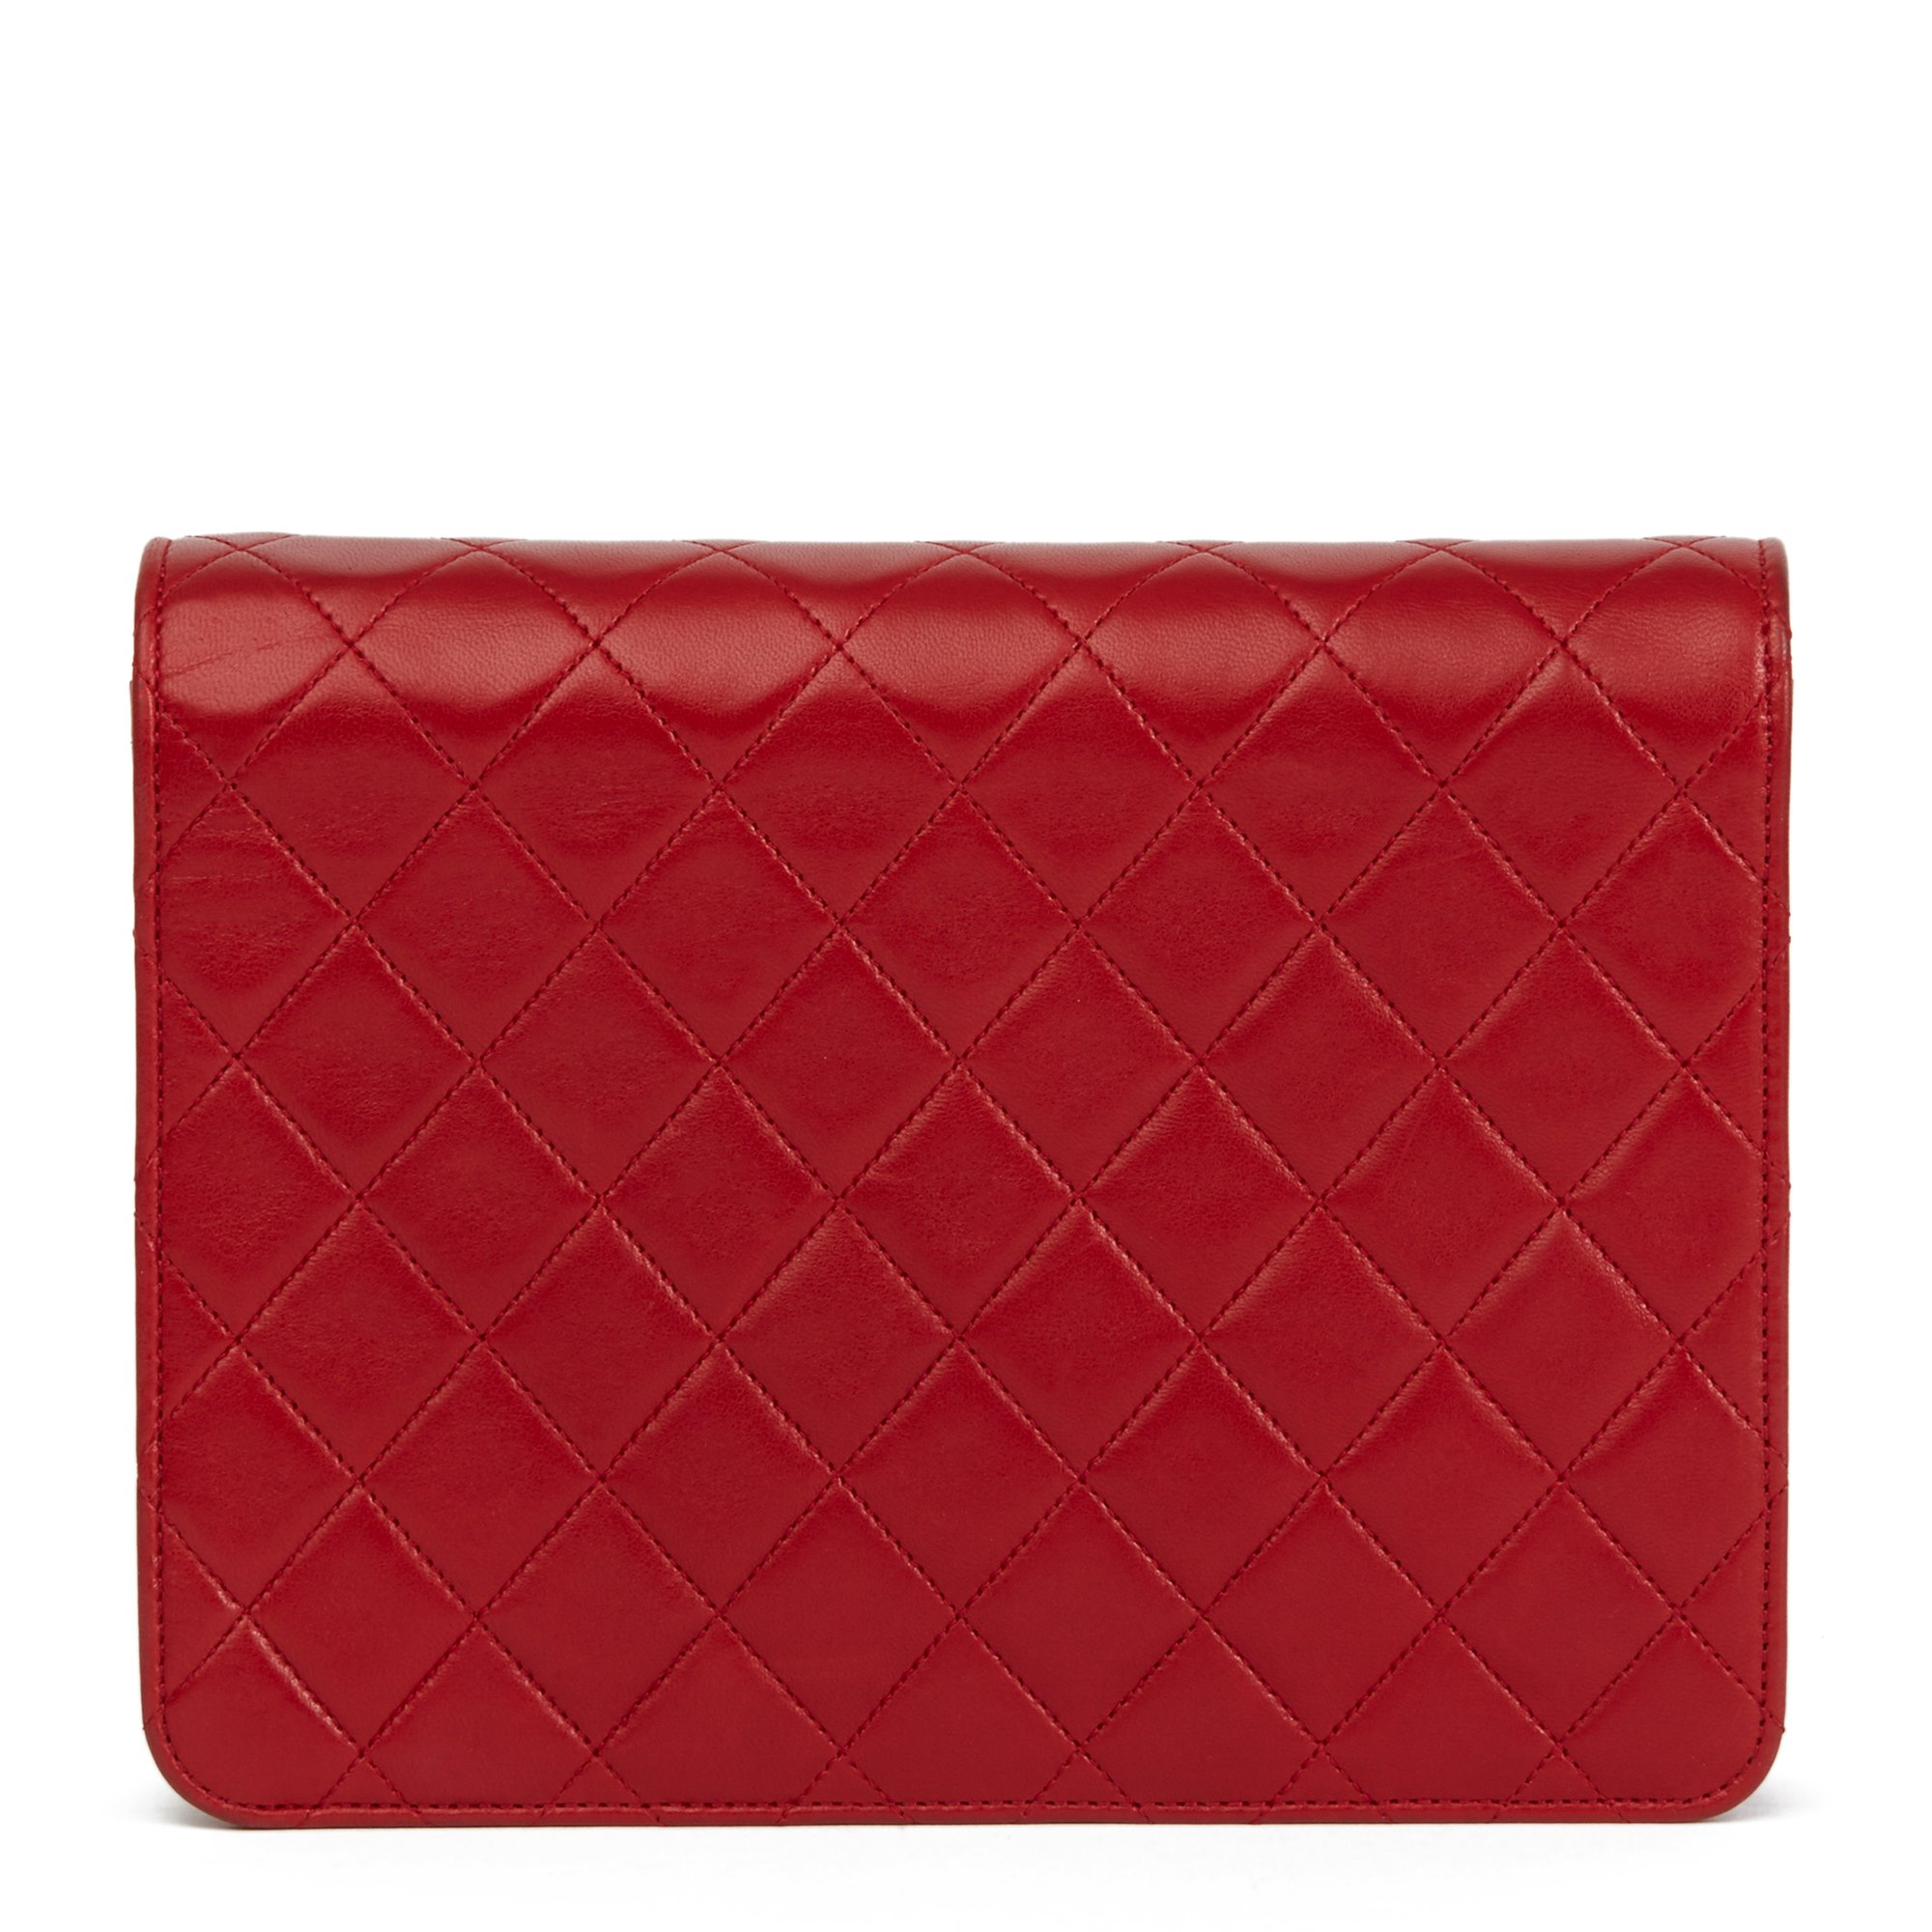 Chanel Red Quilted Lambskin Vintage Small Classic Single Flap Bag